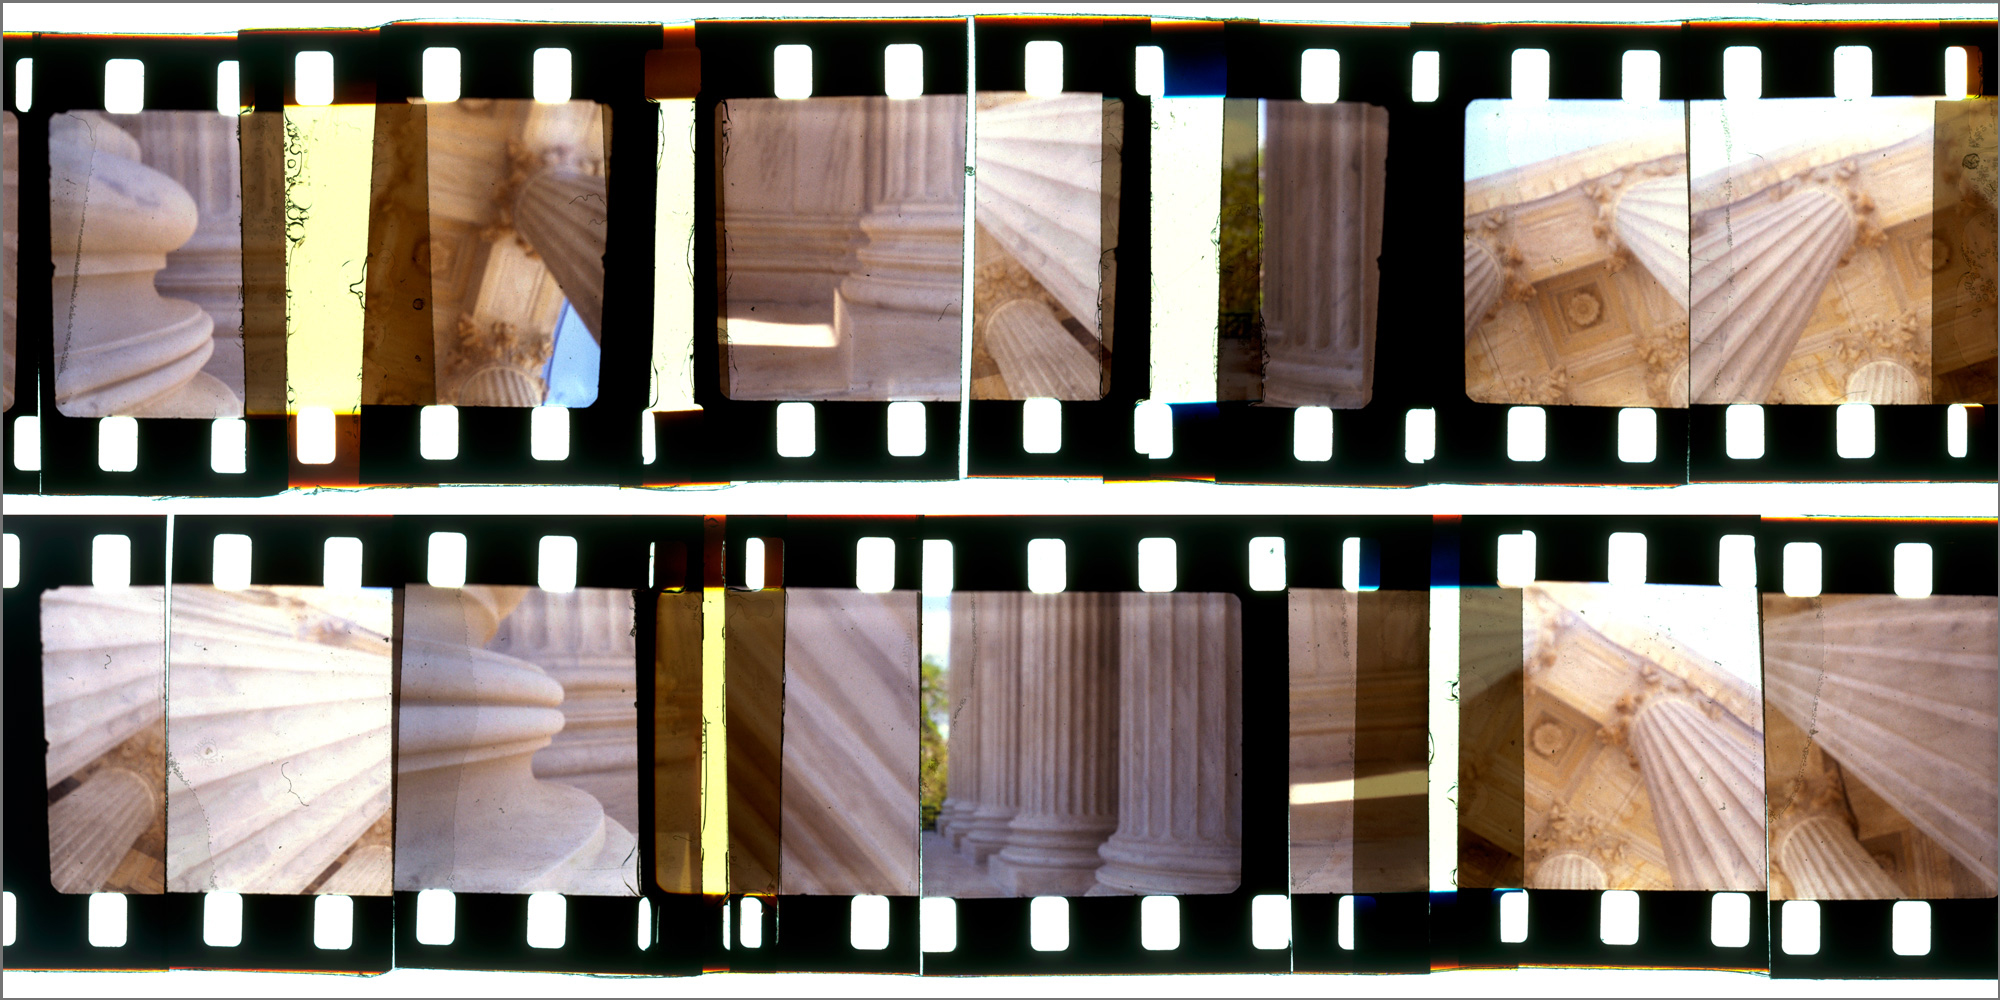 """WASHINGTON CUTUP 7,   ACRYLIC MOUNTED PRINT FROM 16MM TRANSPARENCY FILM COMPOSITION, 24"""" x 48"""", EDITION OF 5"""